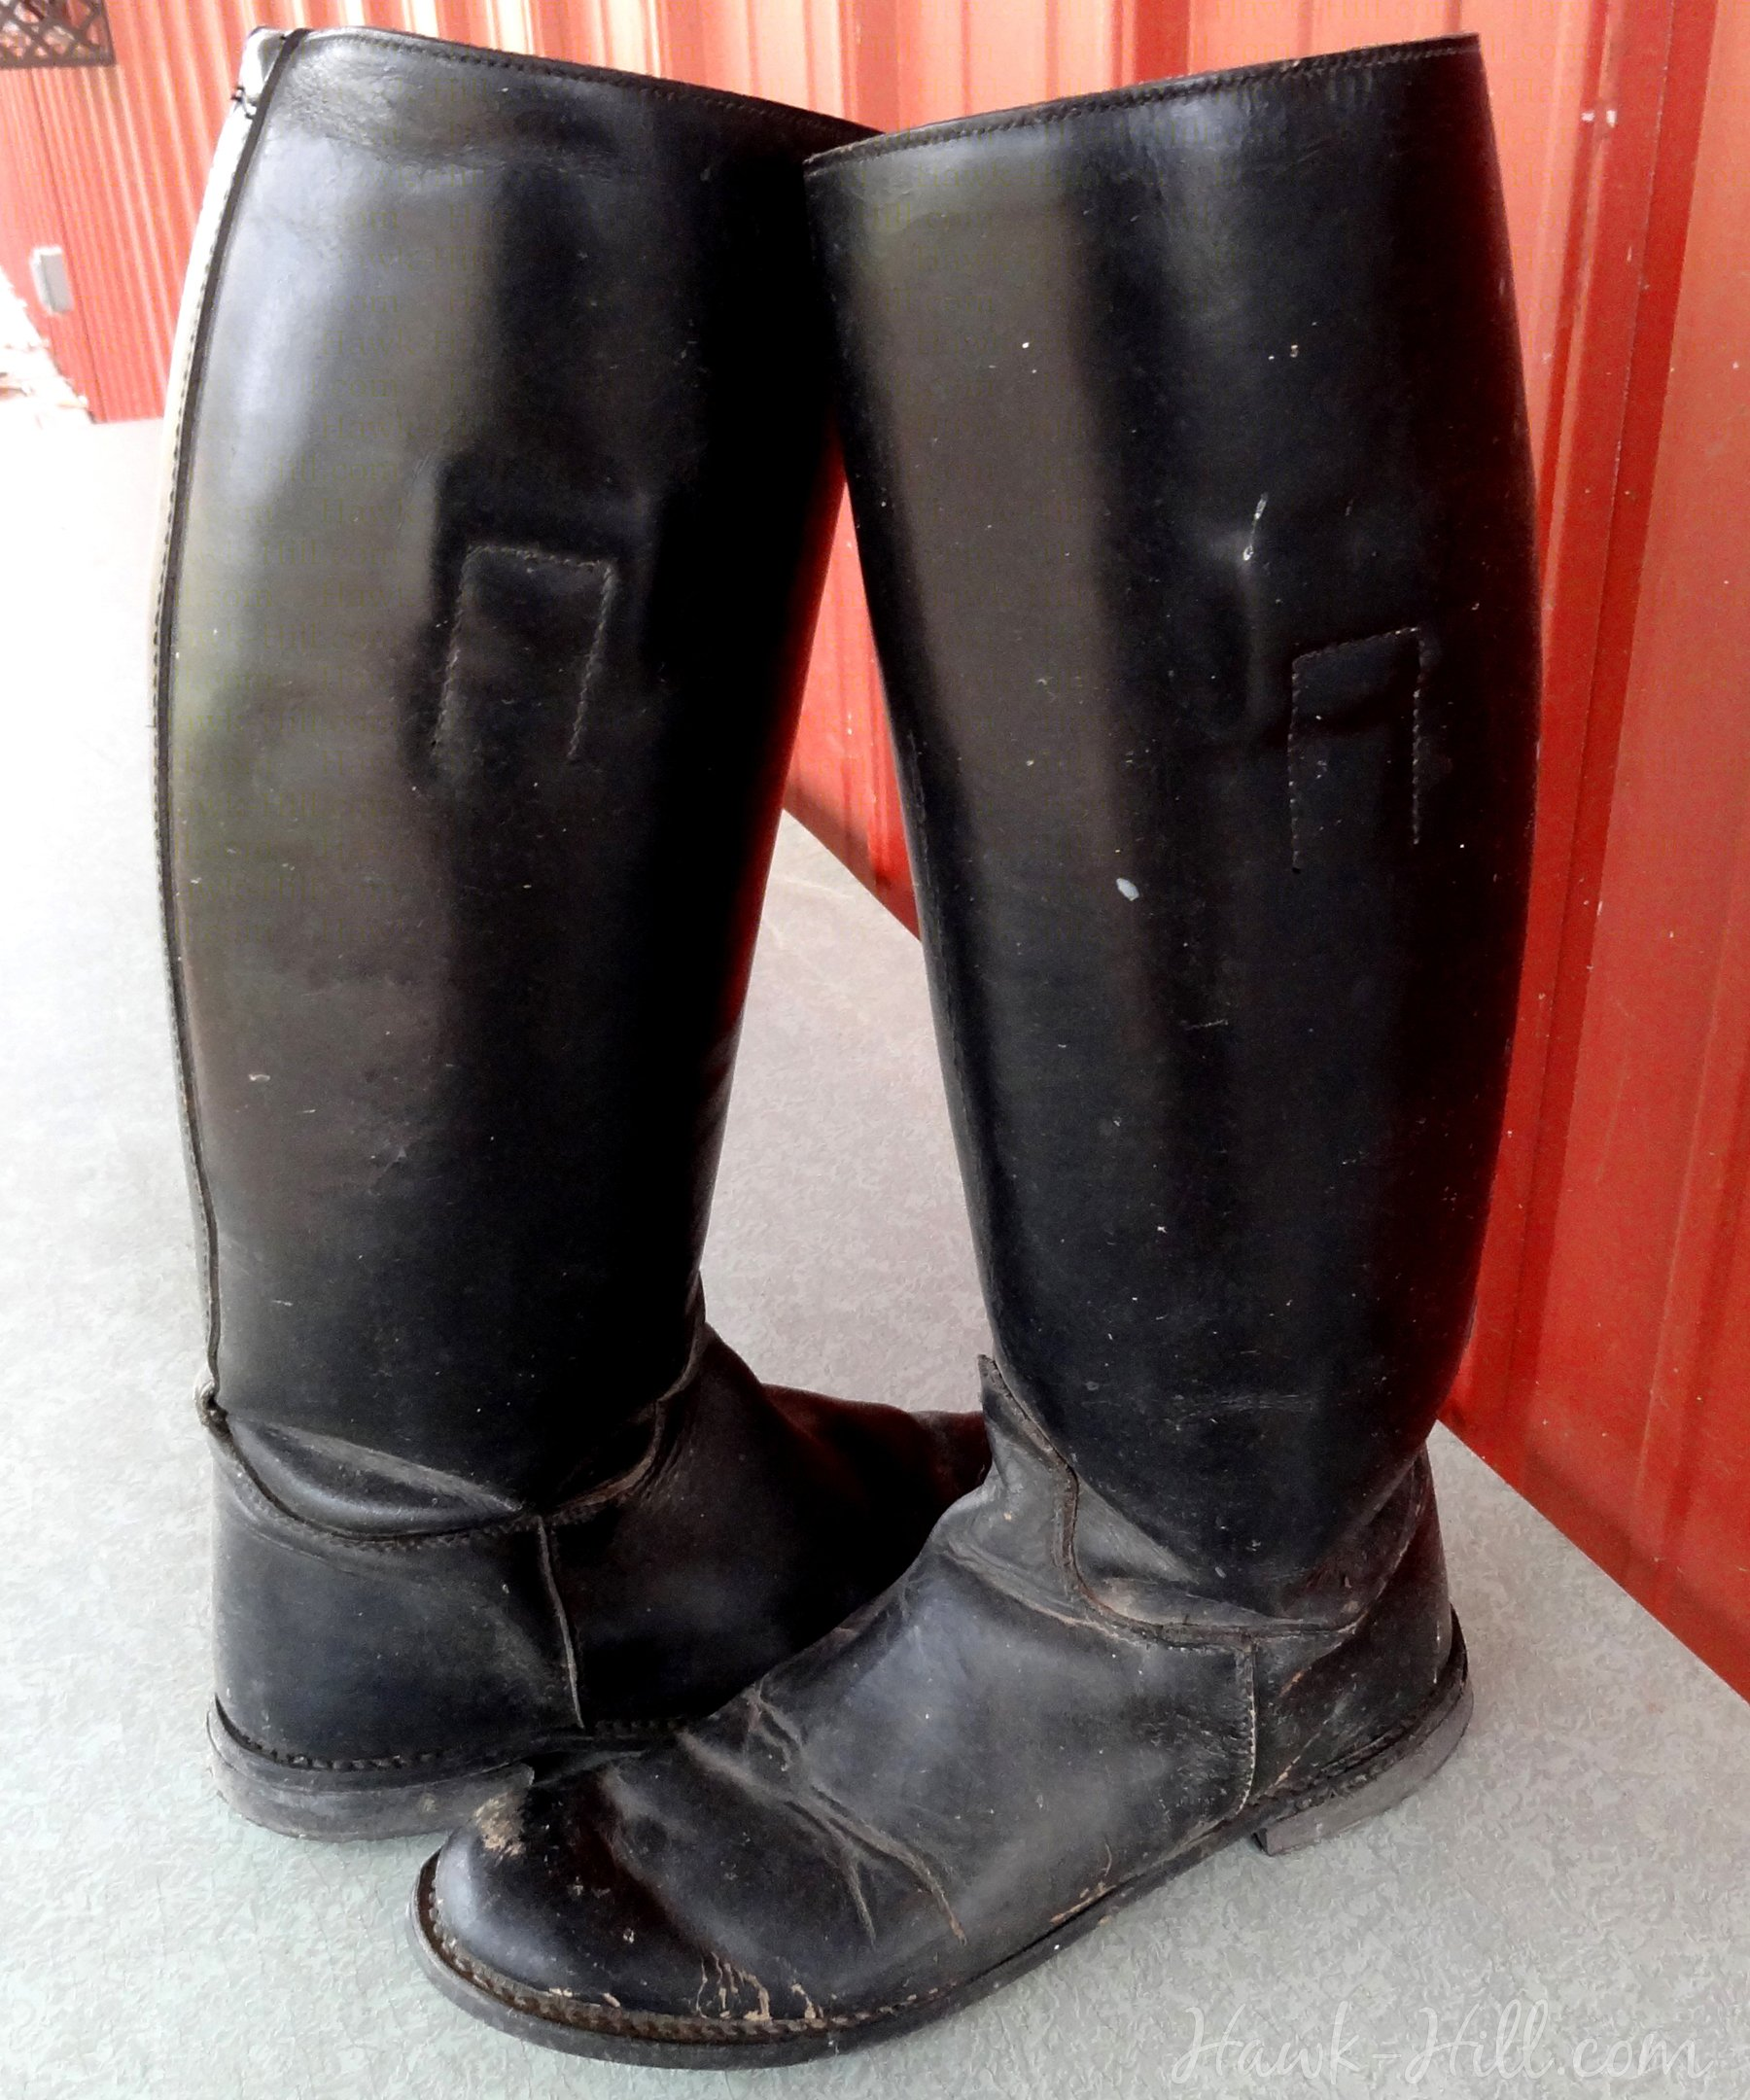 Refreshed and redyed leather boots